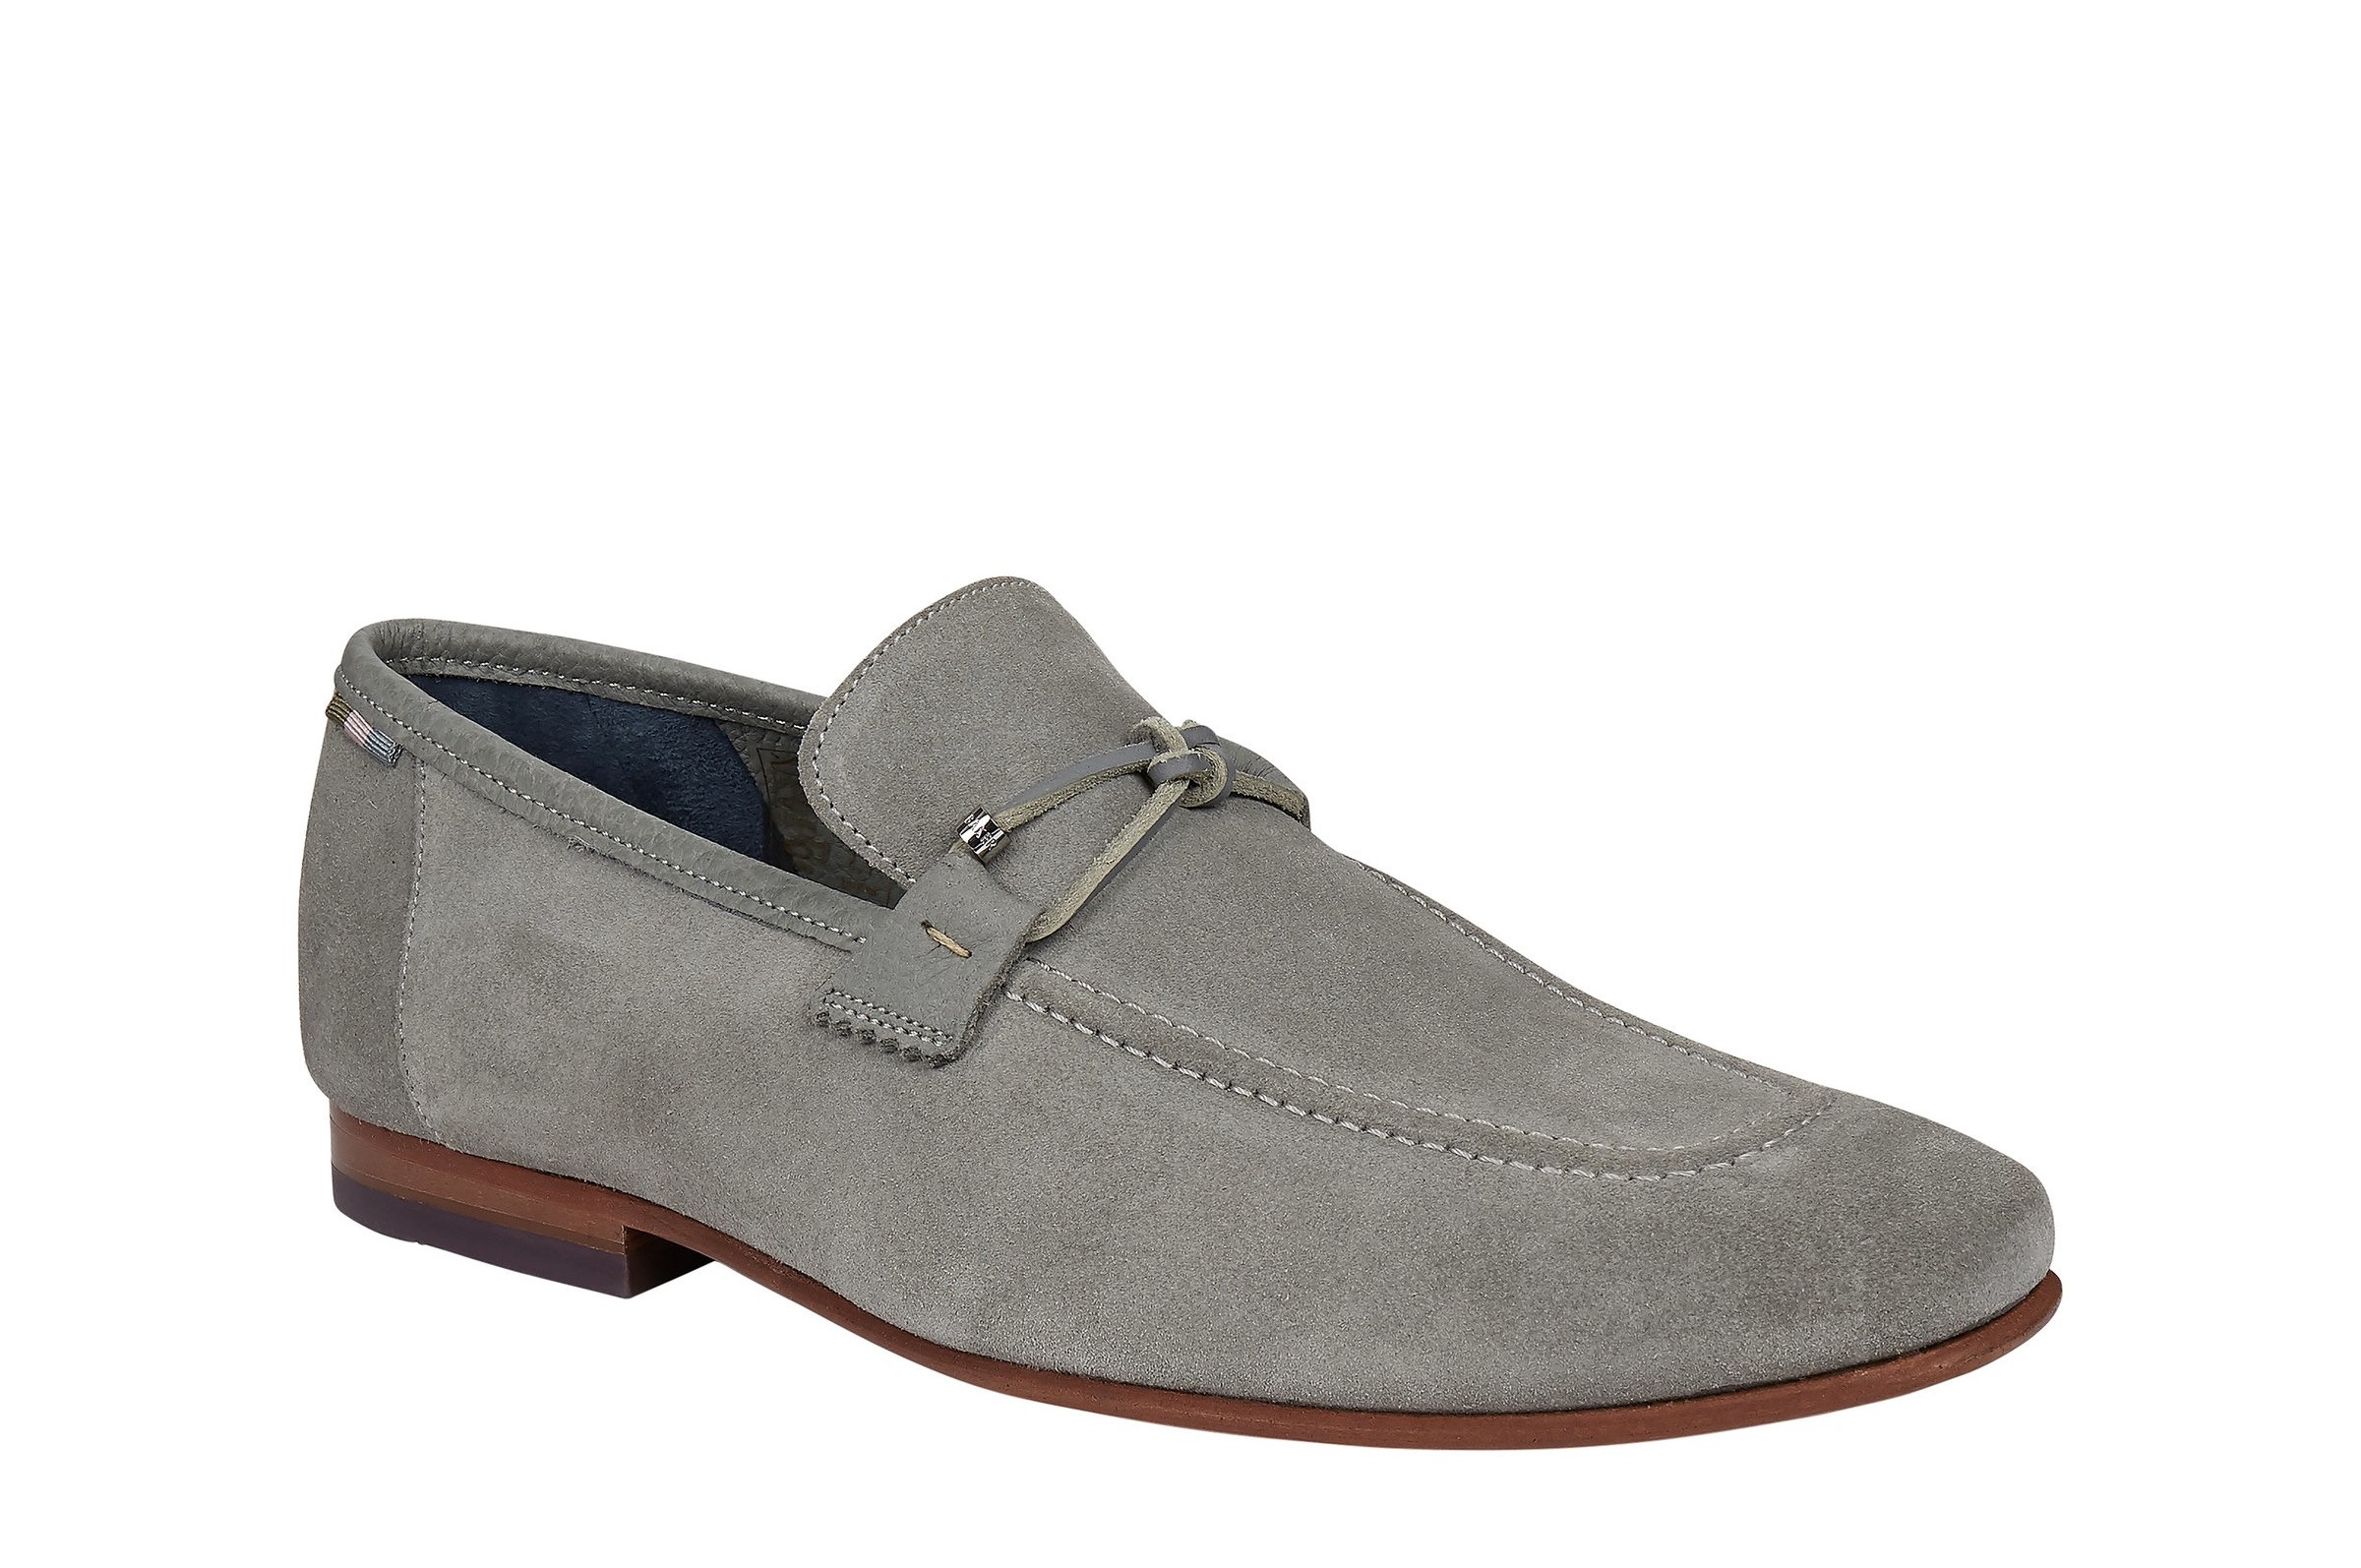 dolce moda loafers - back-to-work style